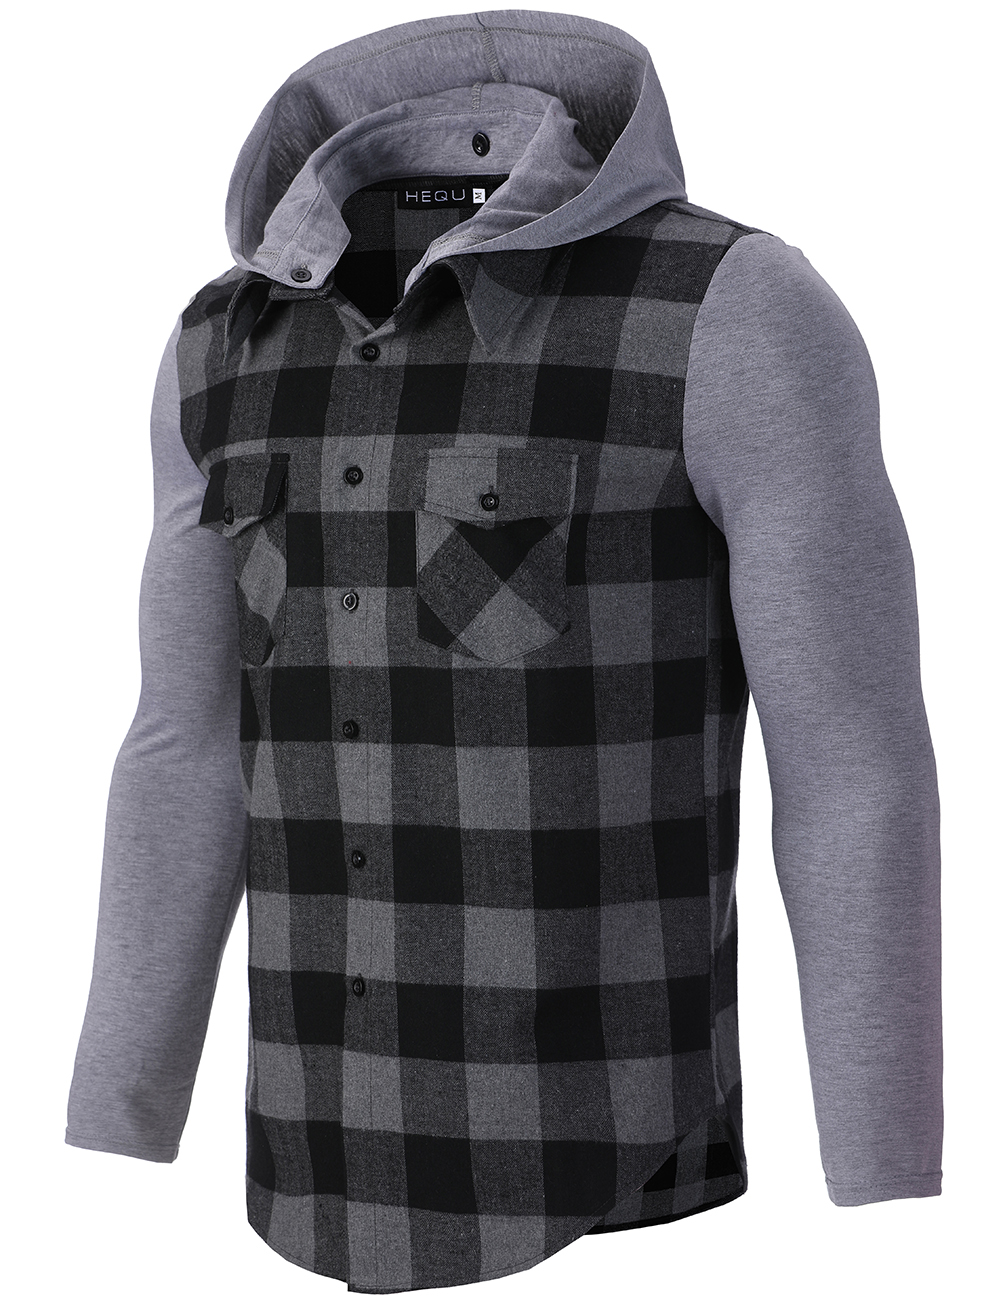 Men's flannel plaid casual hooded shirt men's casual warm and comfortable long-sleeve shirt men's wear